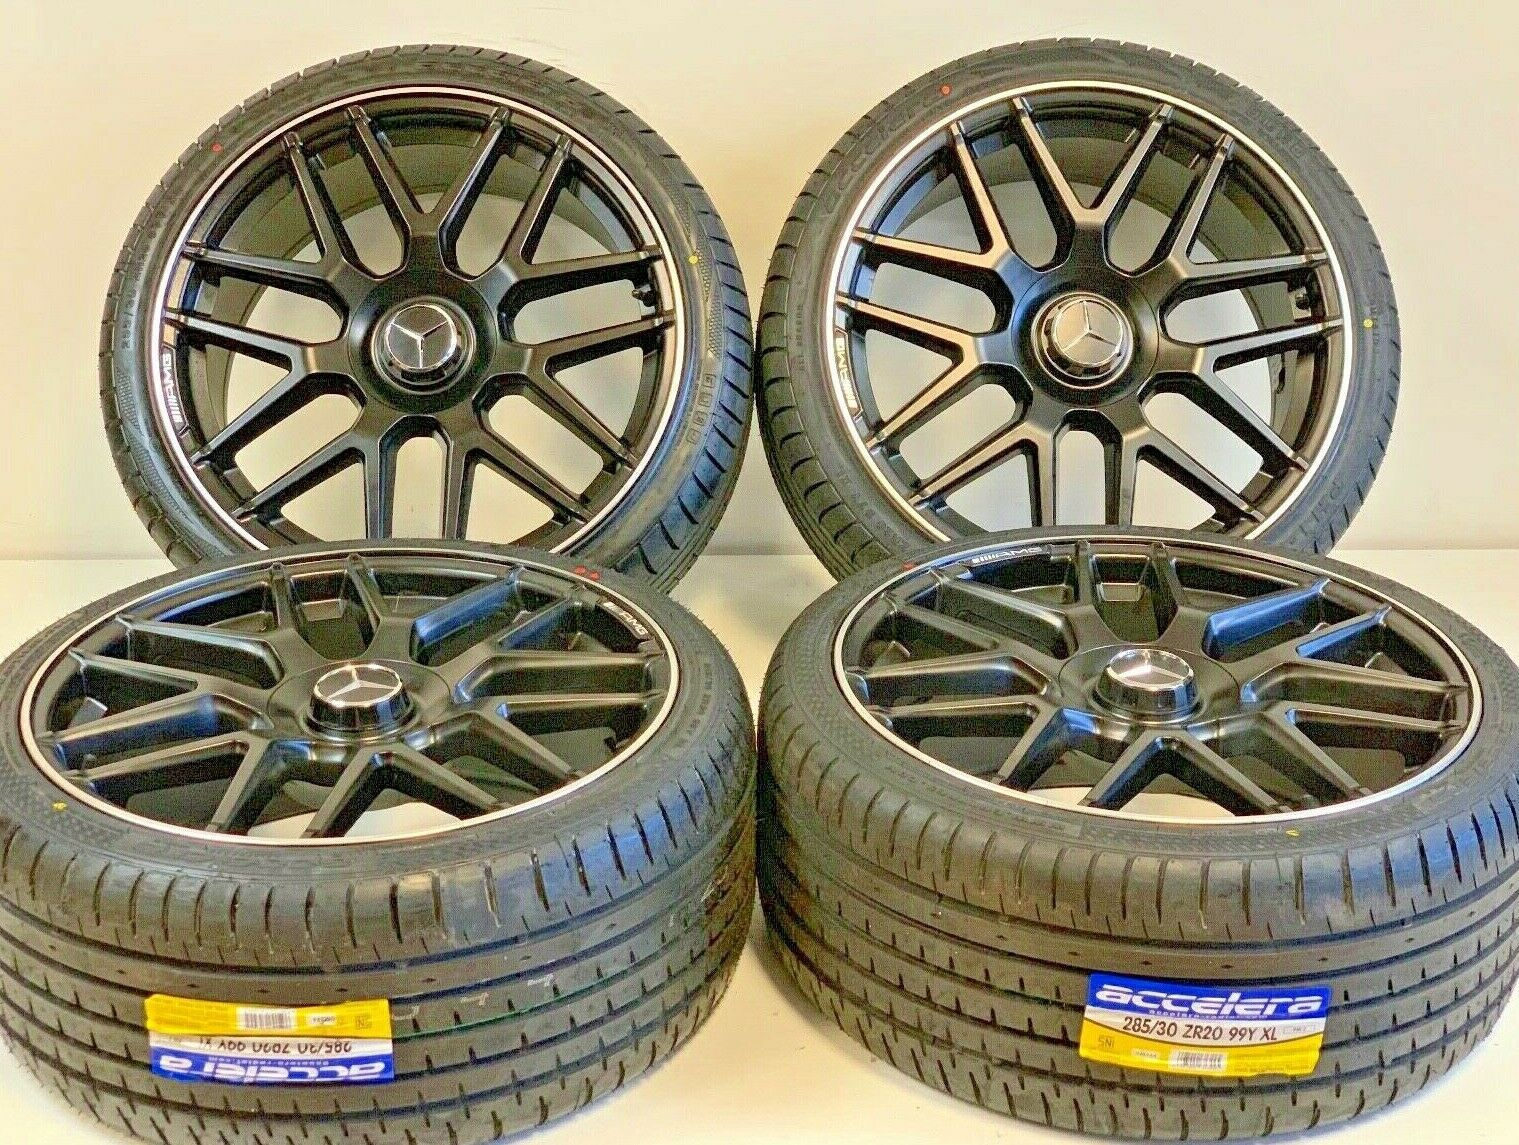 Replica wheels with tires